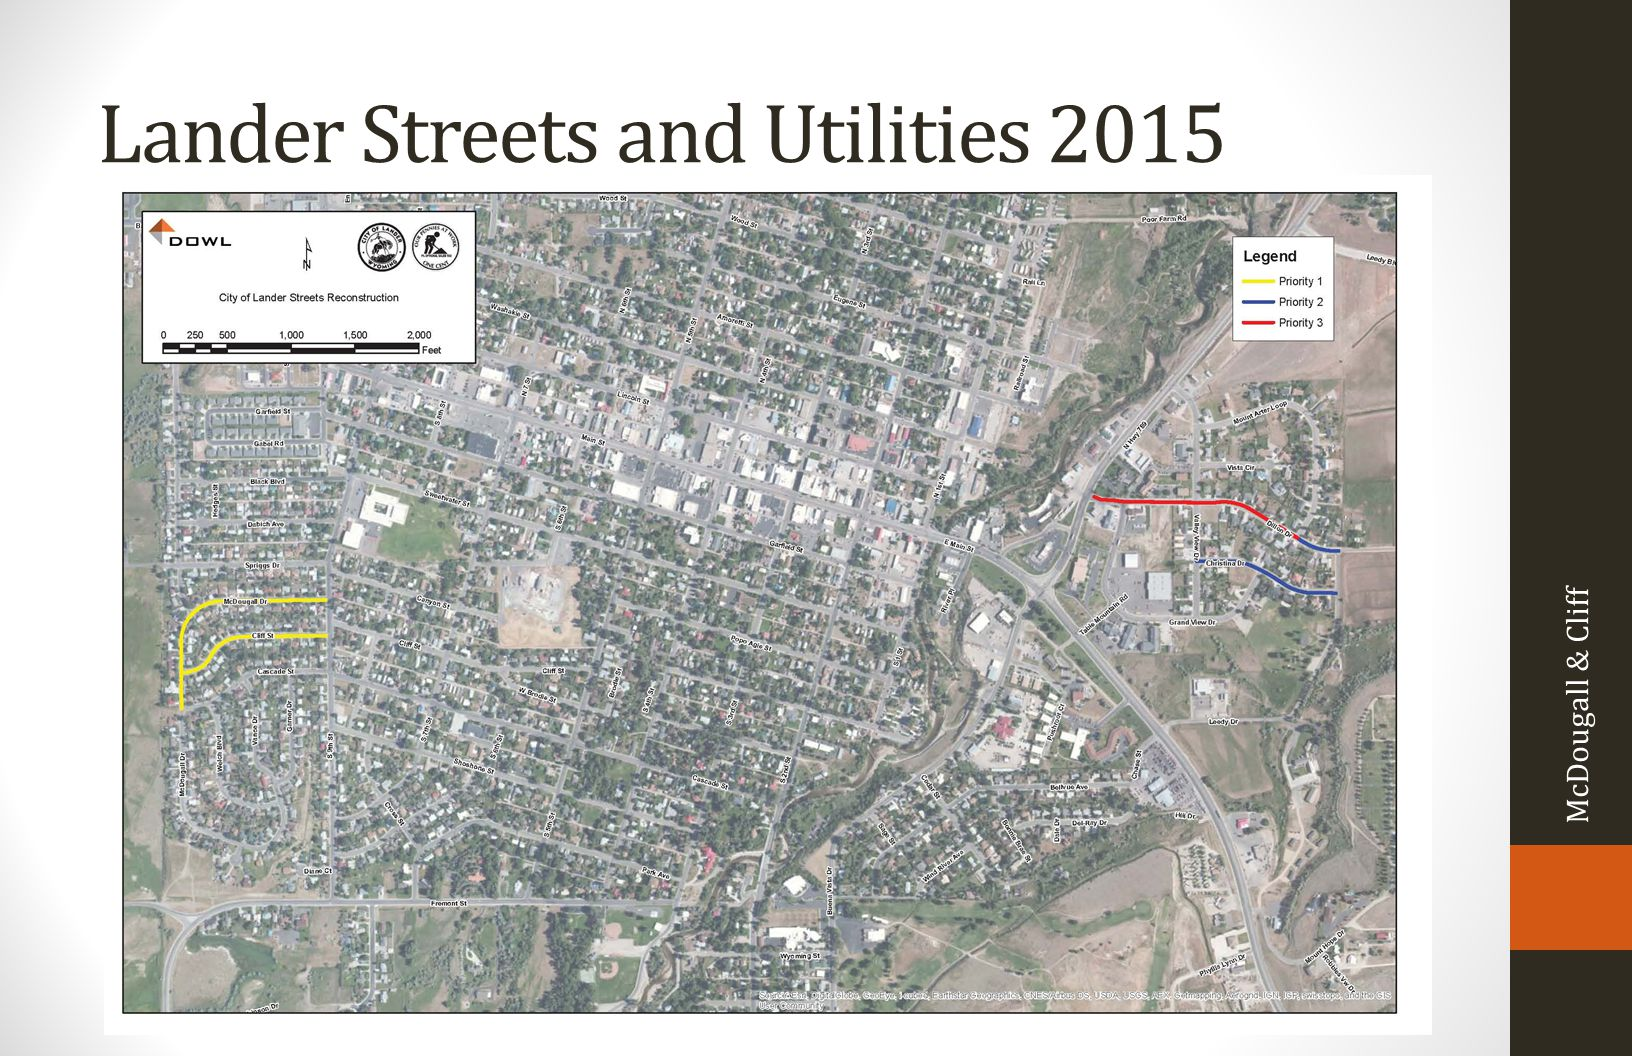 Lander Streets and Utilities 2015 McDougall & Cliff